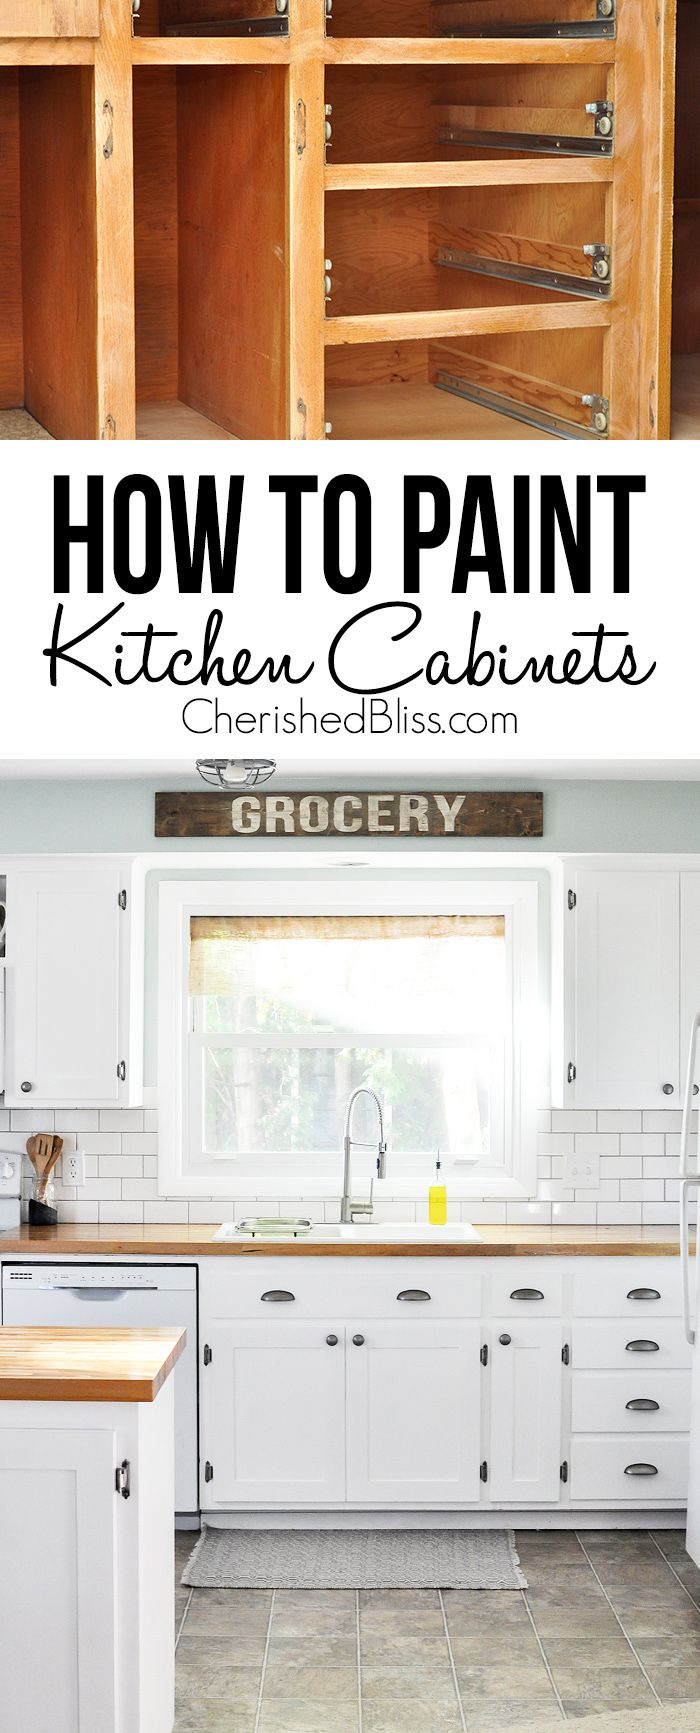 tips on how to paint kitchen cabinets. Interior Design Ideas. Home Design Ideas